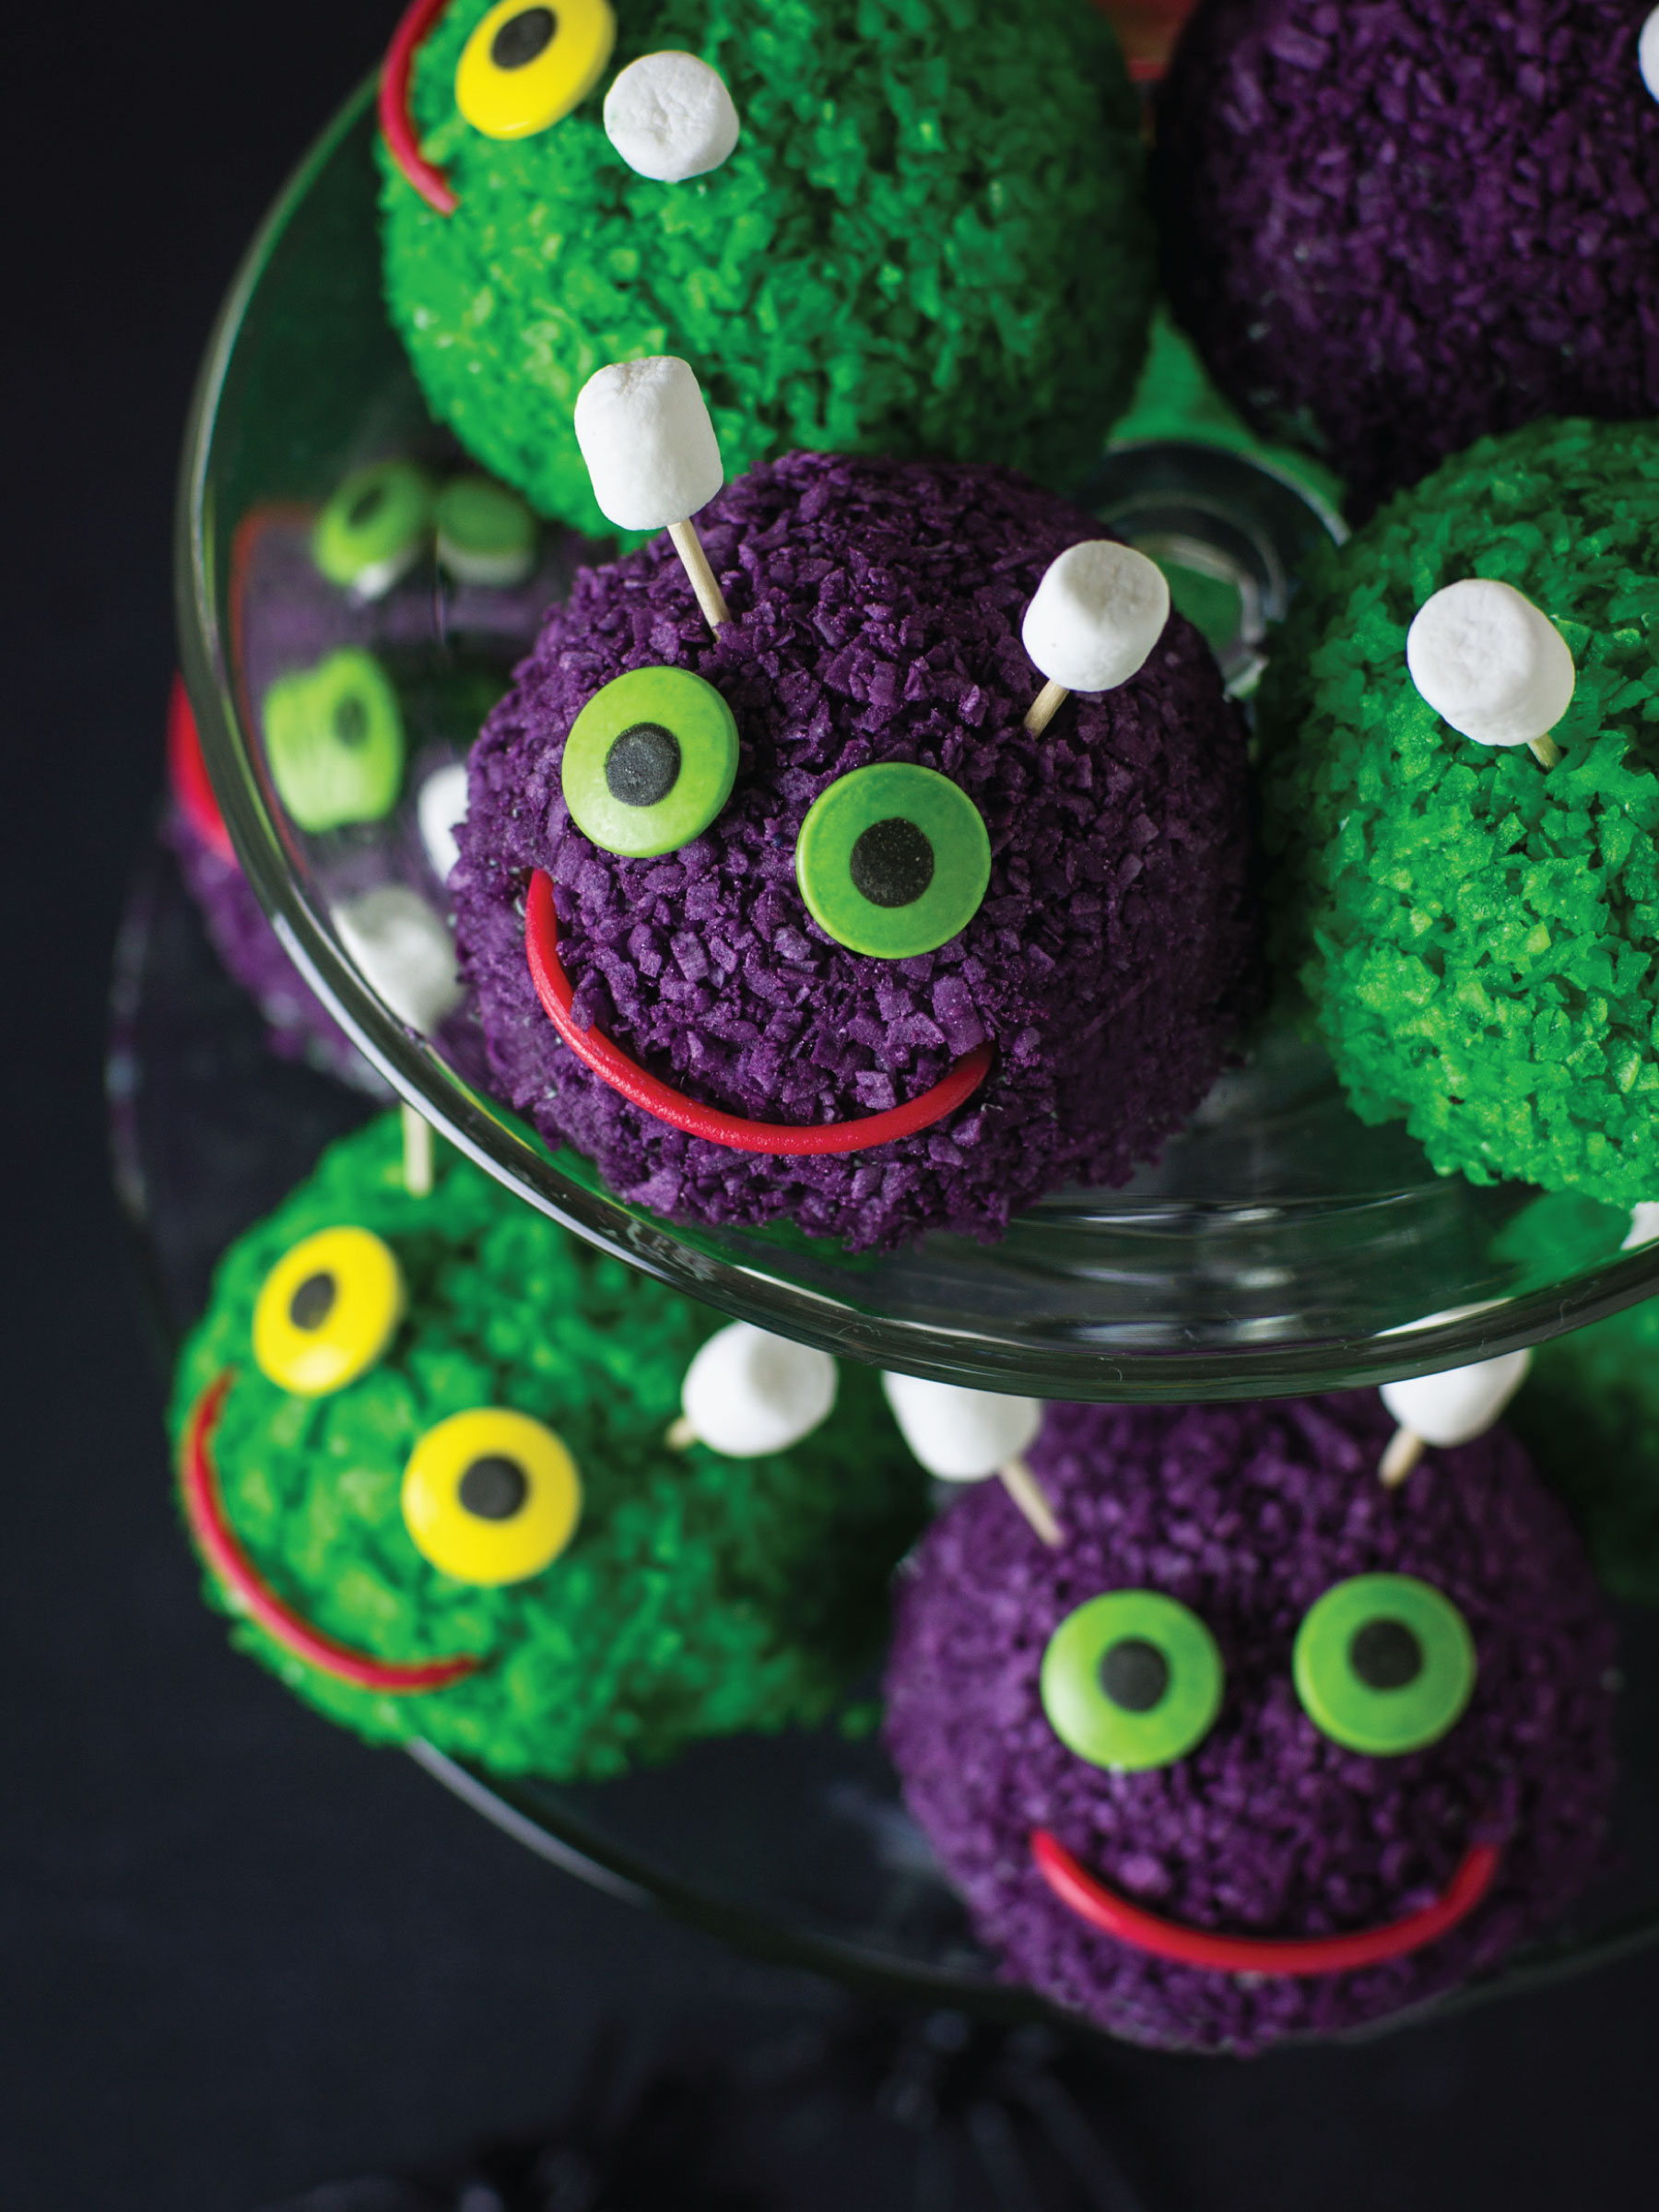 Furry SnowBall Monsters by Sam Henderson of Today's Nest for HGTV